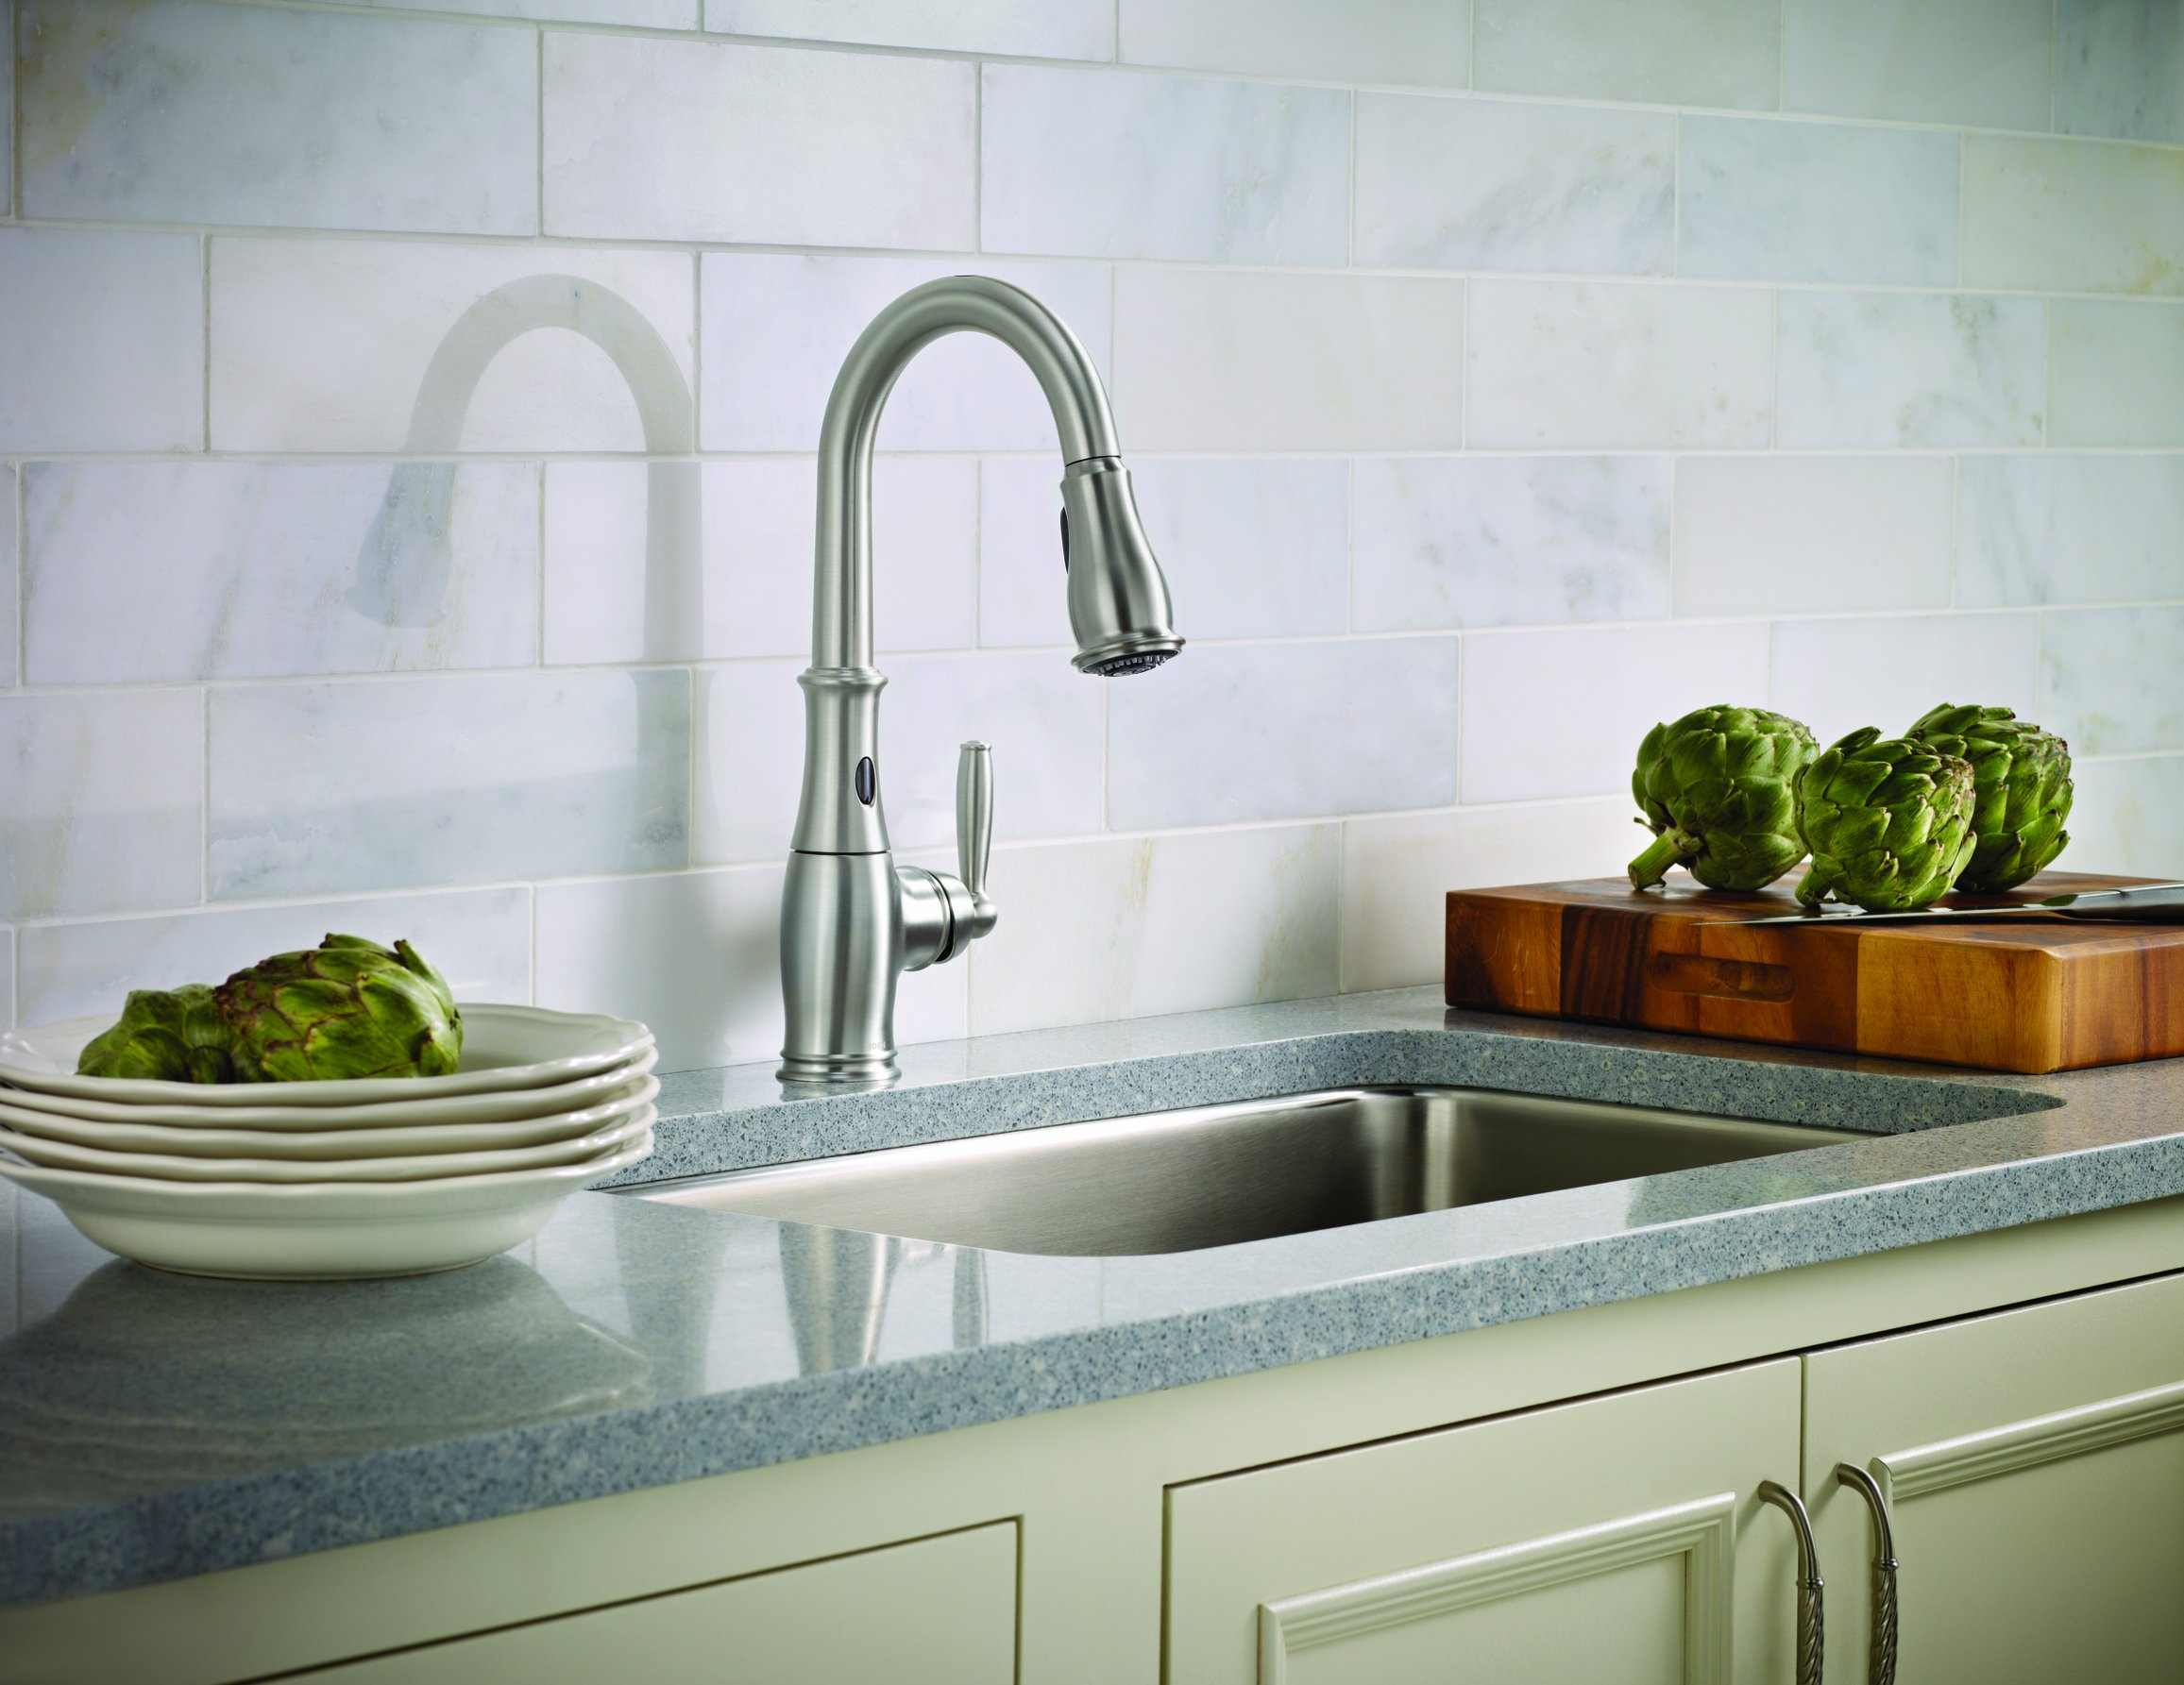 Moen 7185ESRS Brantford One-Handle High-Arc Pulldown Kitchen Faucet Featuring Reflex and MotionSense, Spot Resist Stainless by Moen (Image #4)